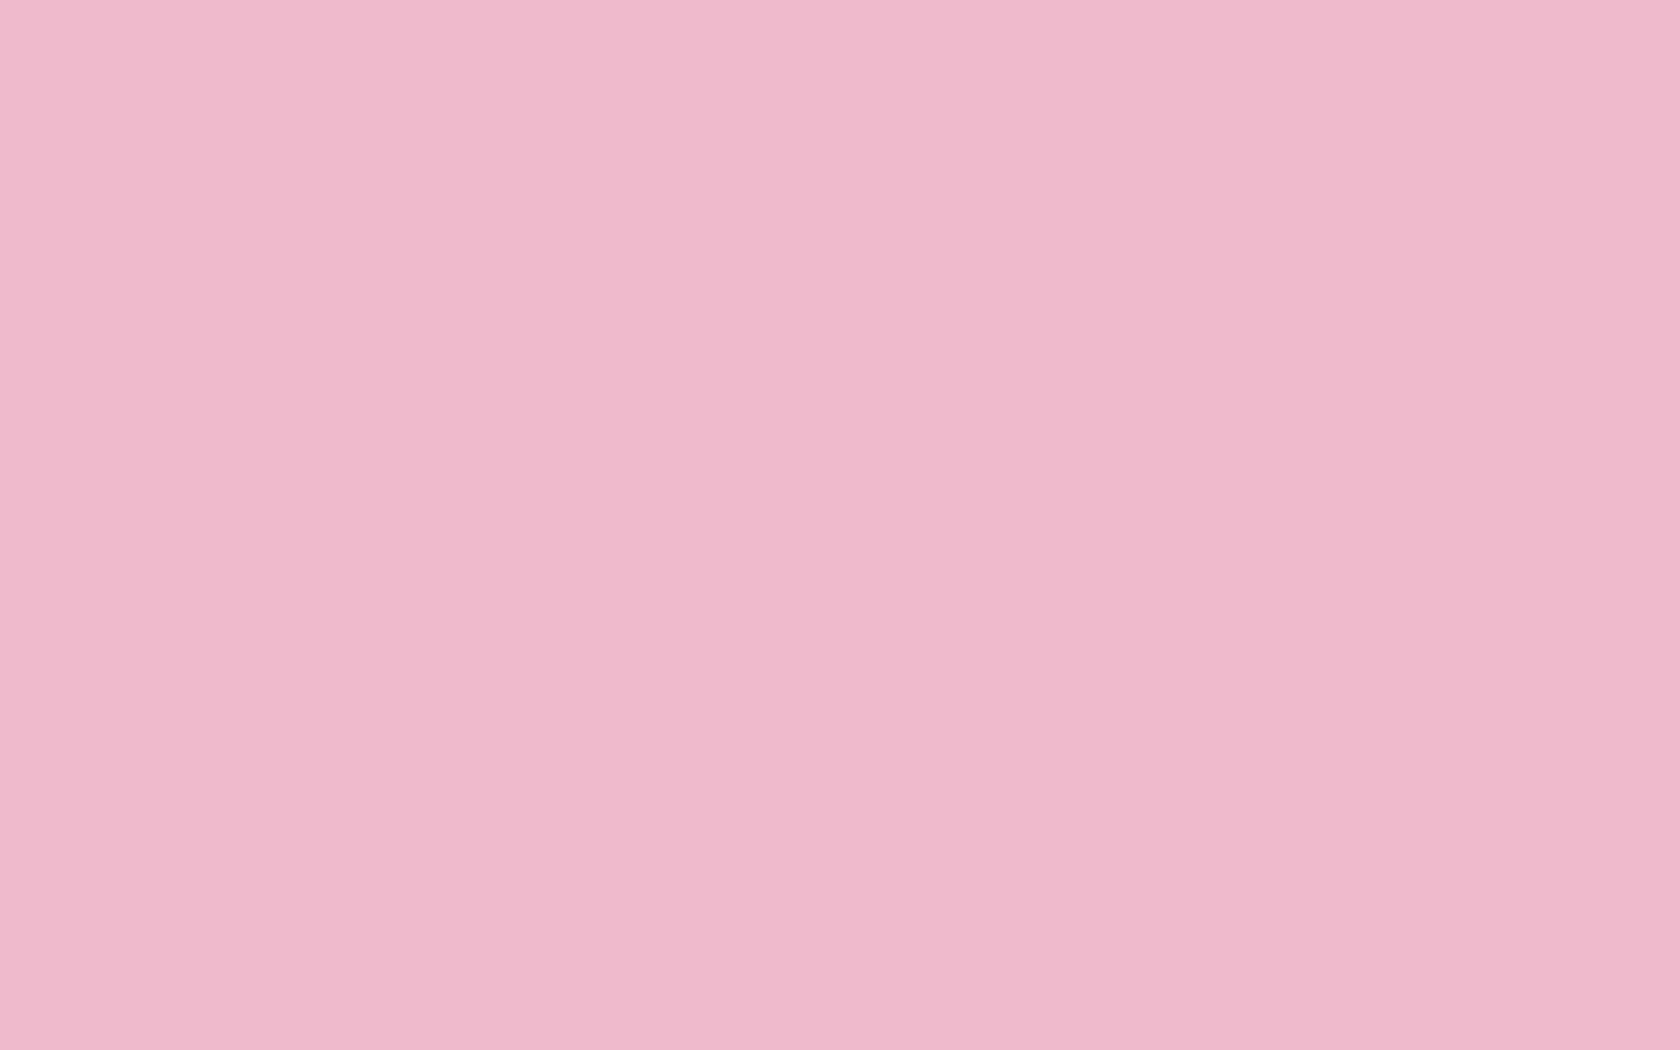 1680x1050 Cameo Pink Solid Color Background